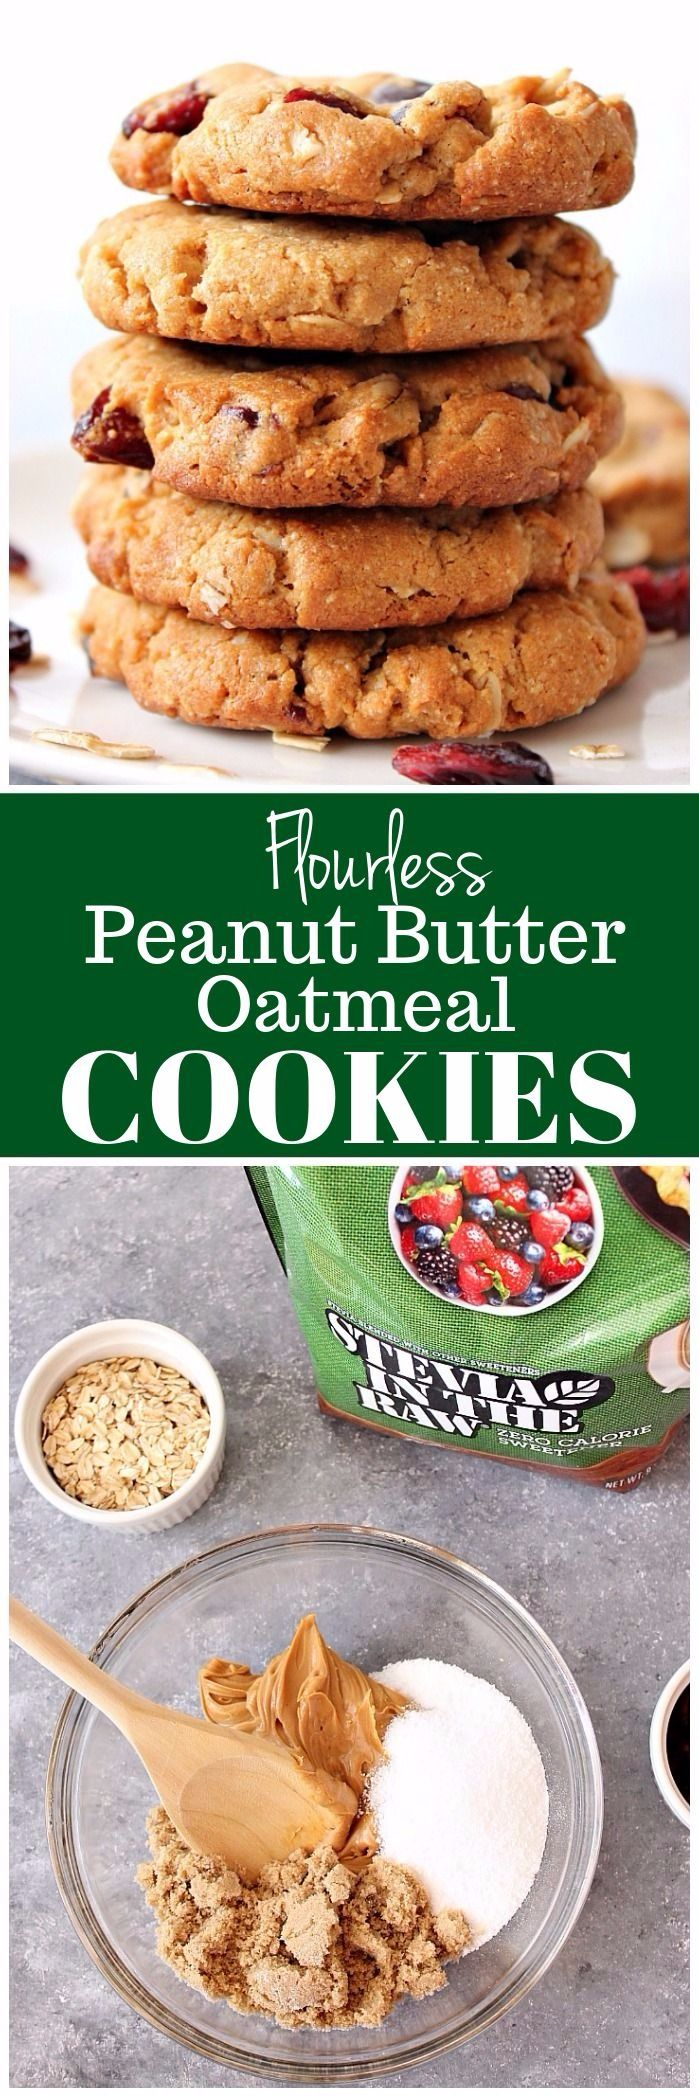 Flourless Peanut Butter Oatmeal Cookies Recipe - sweet and delicious cookies made with peanut butter and packed with oats and dried fruit. | www.crunchycreamysweet.com